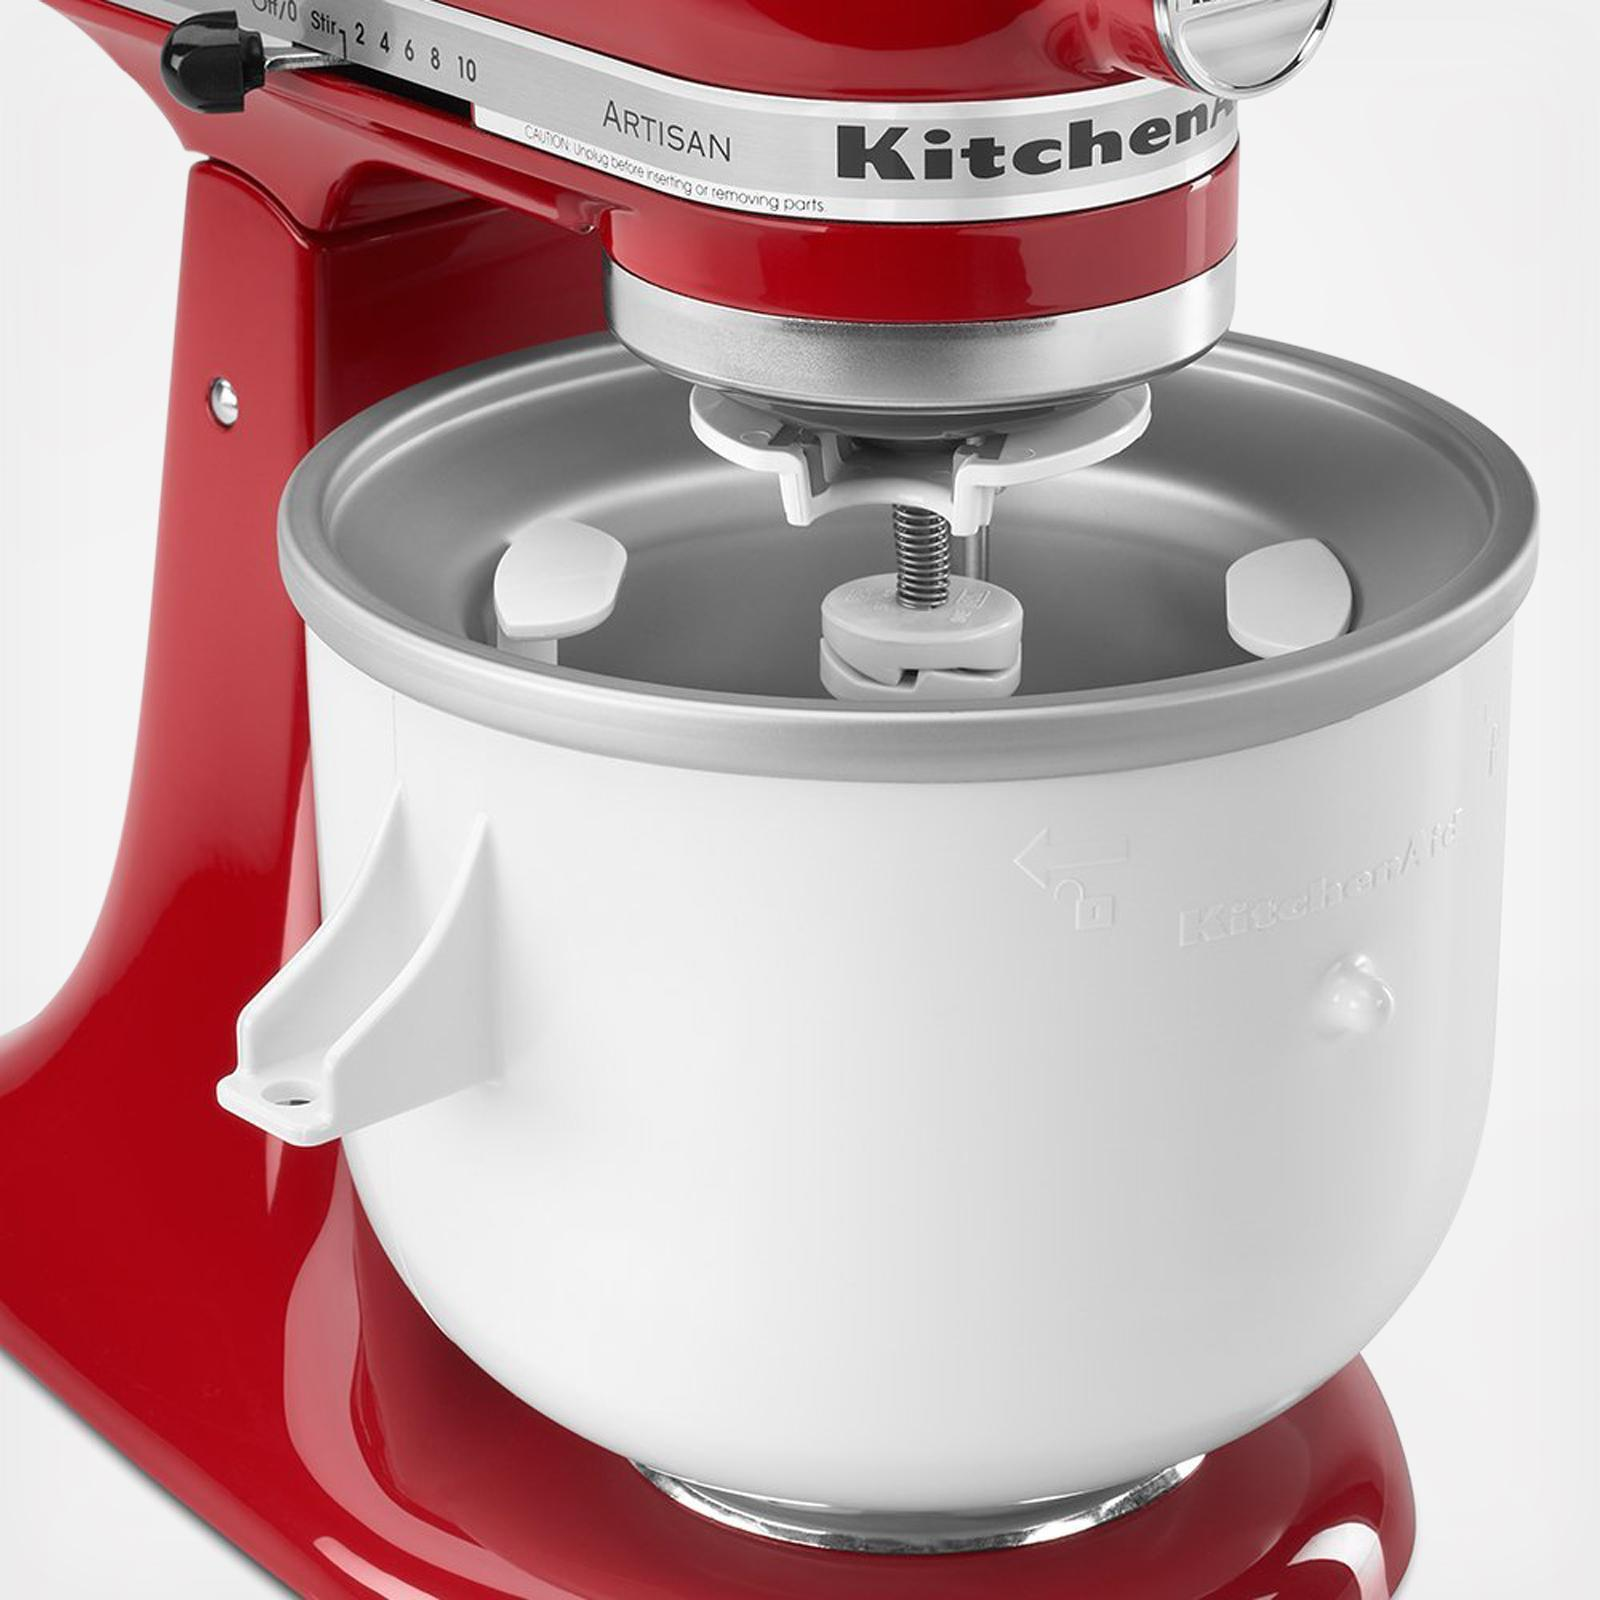 Ice Cream Stand Mixer Attachment | Zola on t-fal can opener, best can opener, toucan can opener, food network can opener, softworks can opener, side can opener, electric can opener, red can opener, henckels can opener, imperial can opener, fissler can opener, panasonic can opener, black and decker can opener, manual can opener, sharp can opener, le creuset can opener, disney can opener, rimless can opener, bodum can opener, conair can opener,